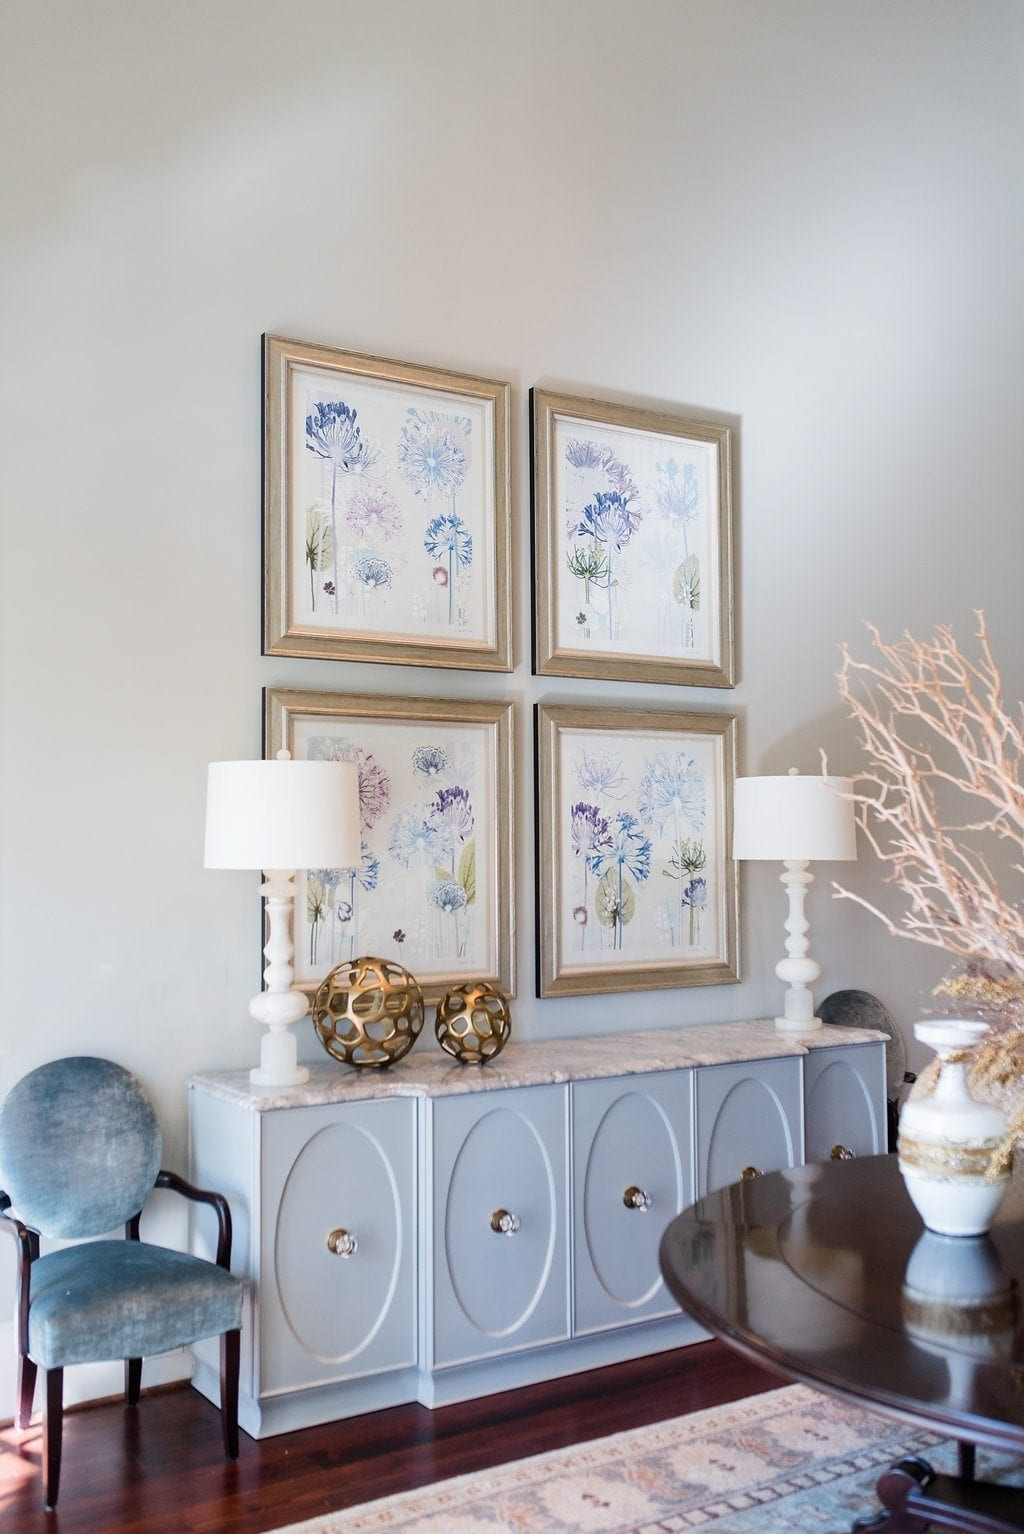 A special giveaway of an Amanda Ross floral artwork wall art series. Typically only available to the trade through Trowbridge Art and other designer only places, this giveaway will give two winners exclusive signed artwork to grace their home.